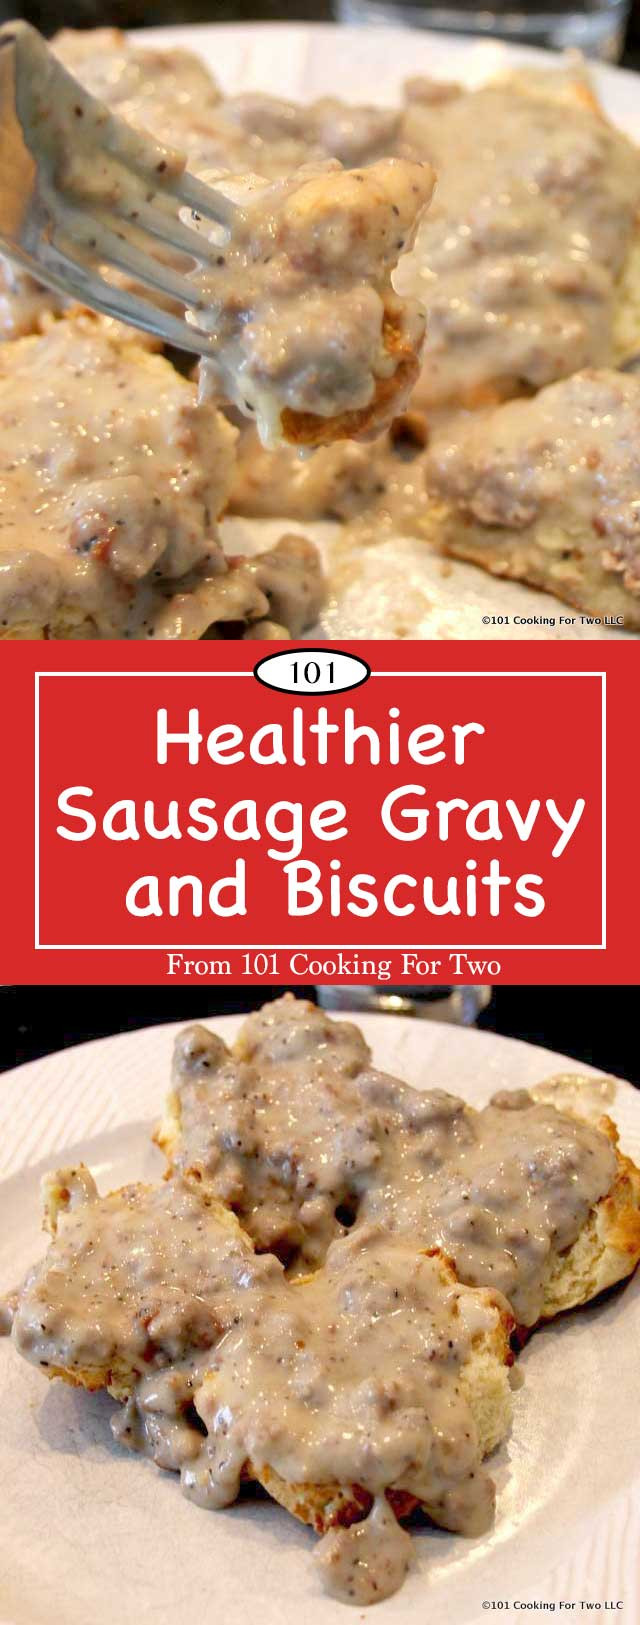 Healthy Biscuits And Gravy  Healthier Sausage Gravy and Biscuits